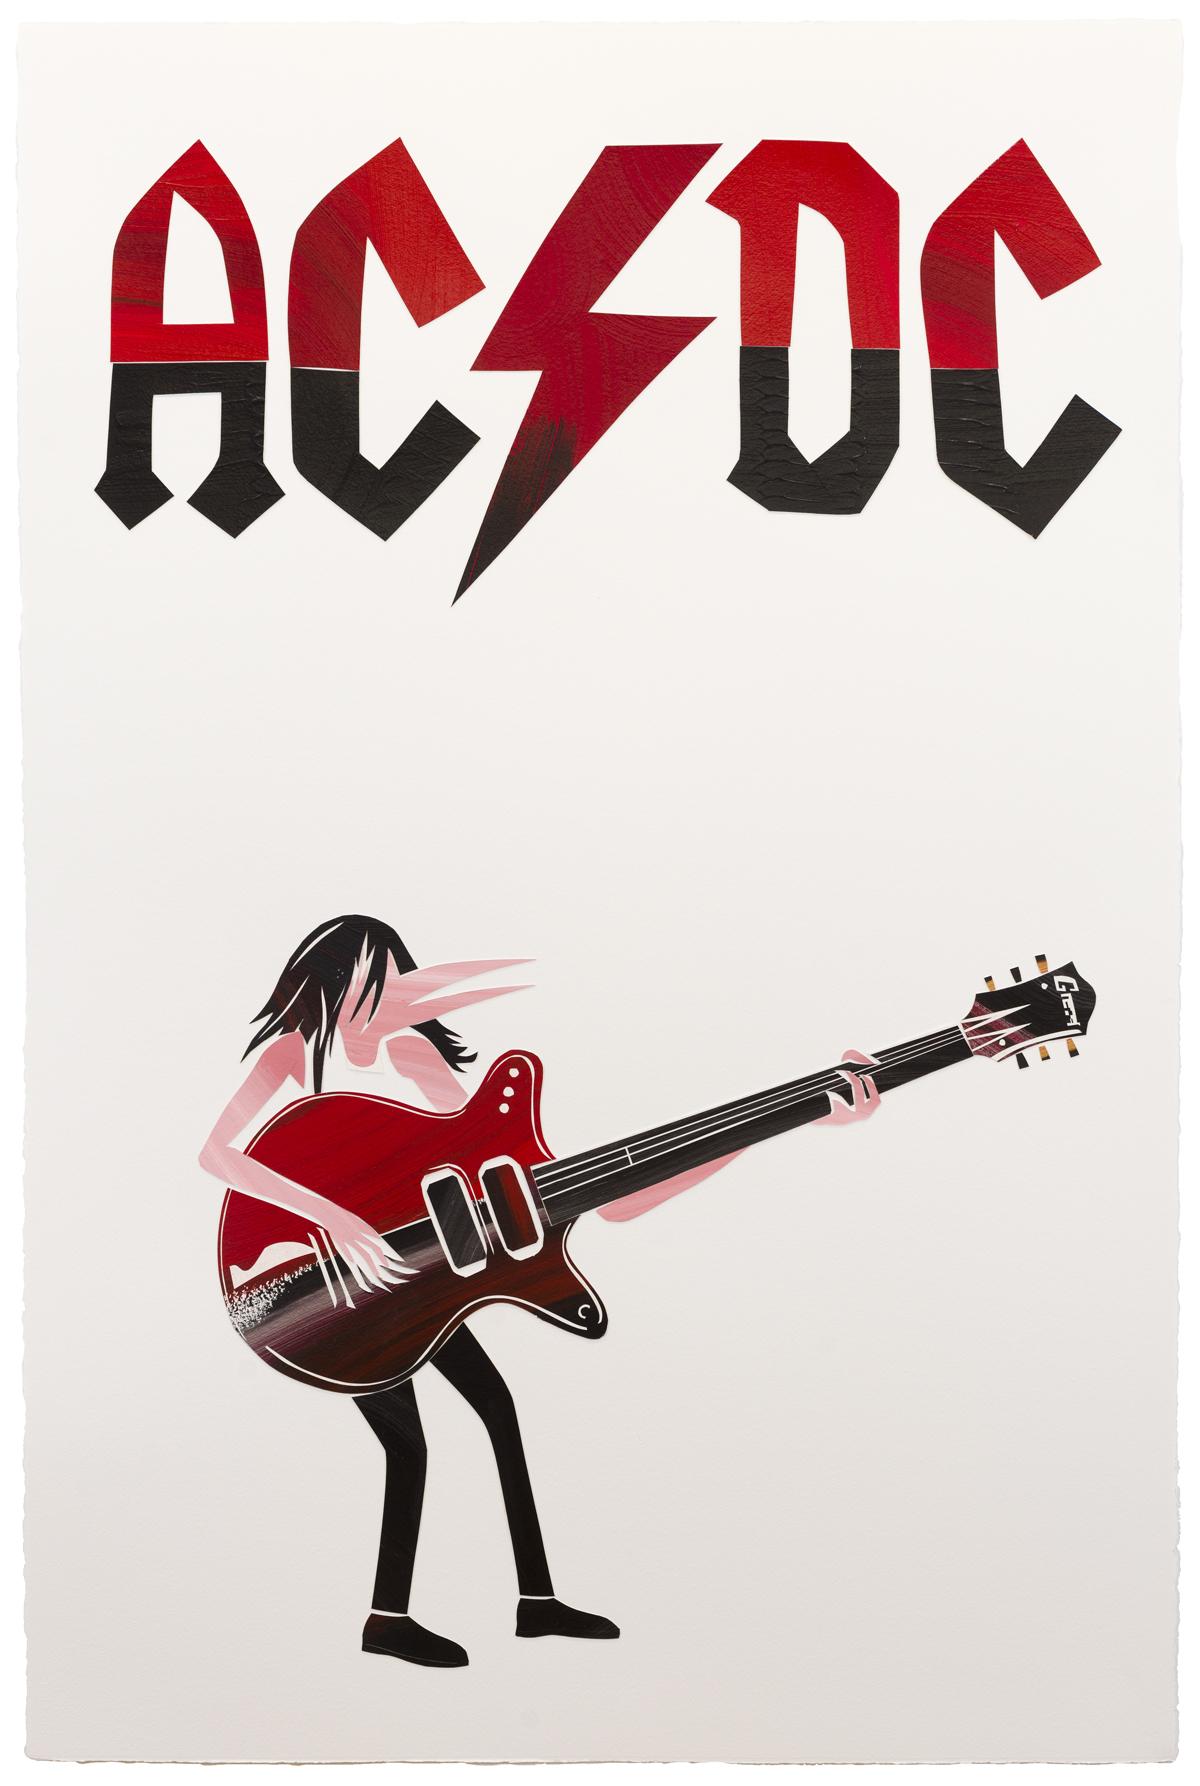 Abdul Vas. The Cut-Outs Rock Edge. Malcolm Young Forever AC/DC, 2012